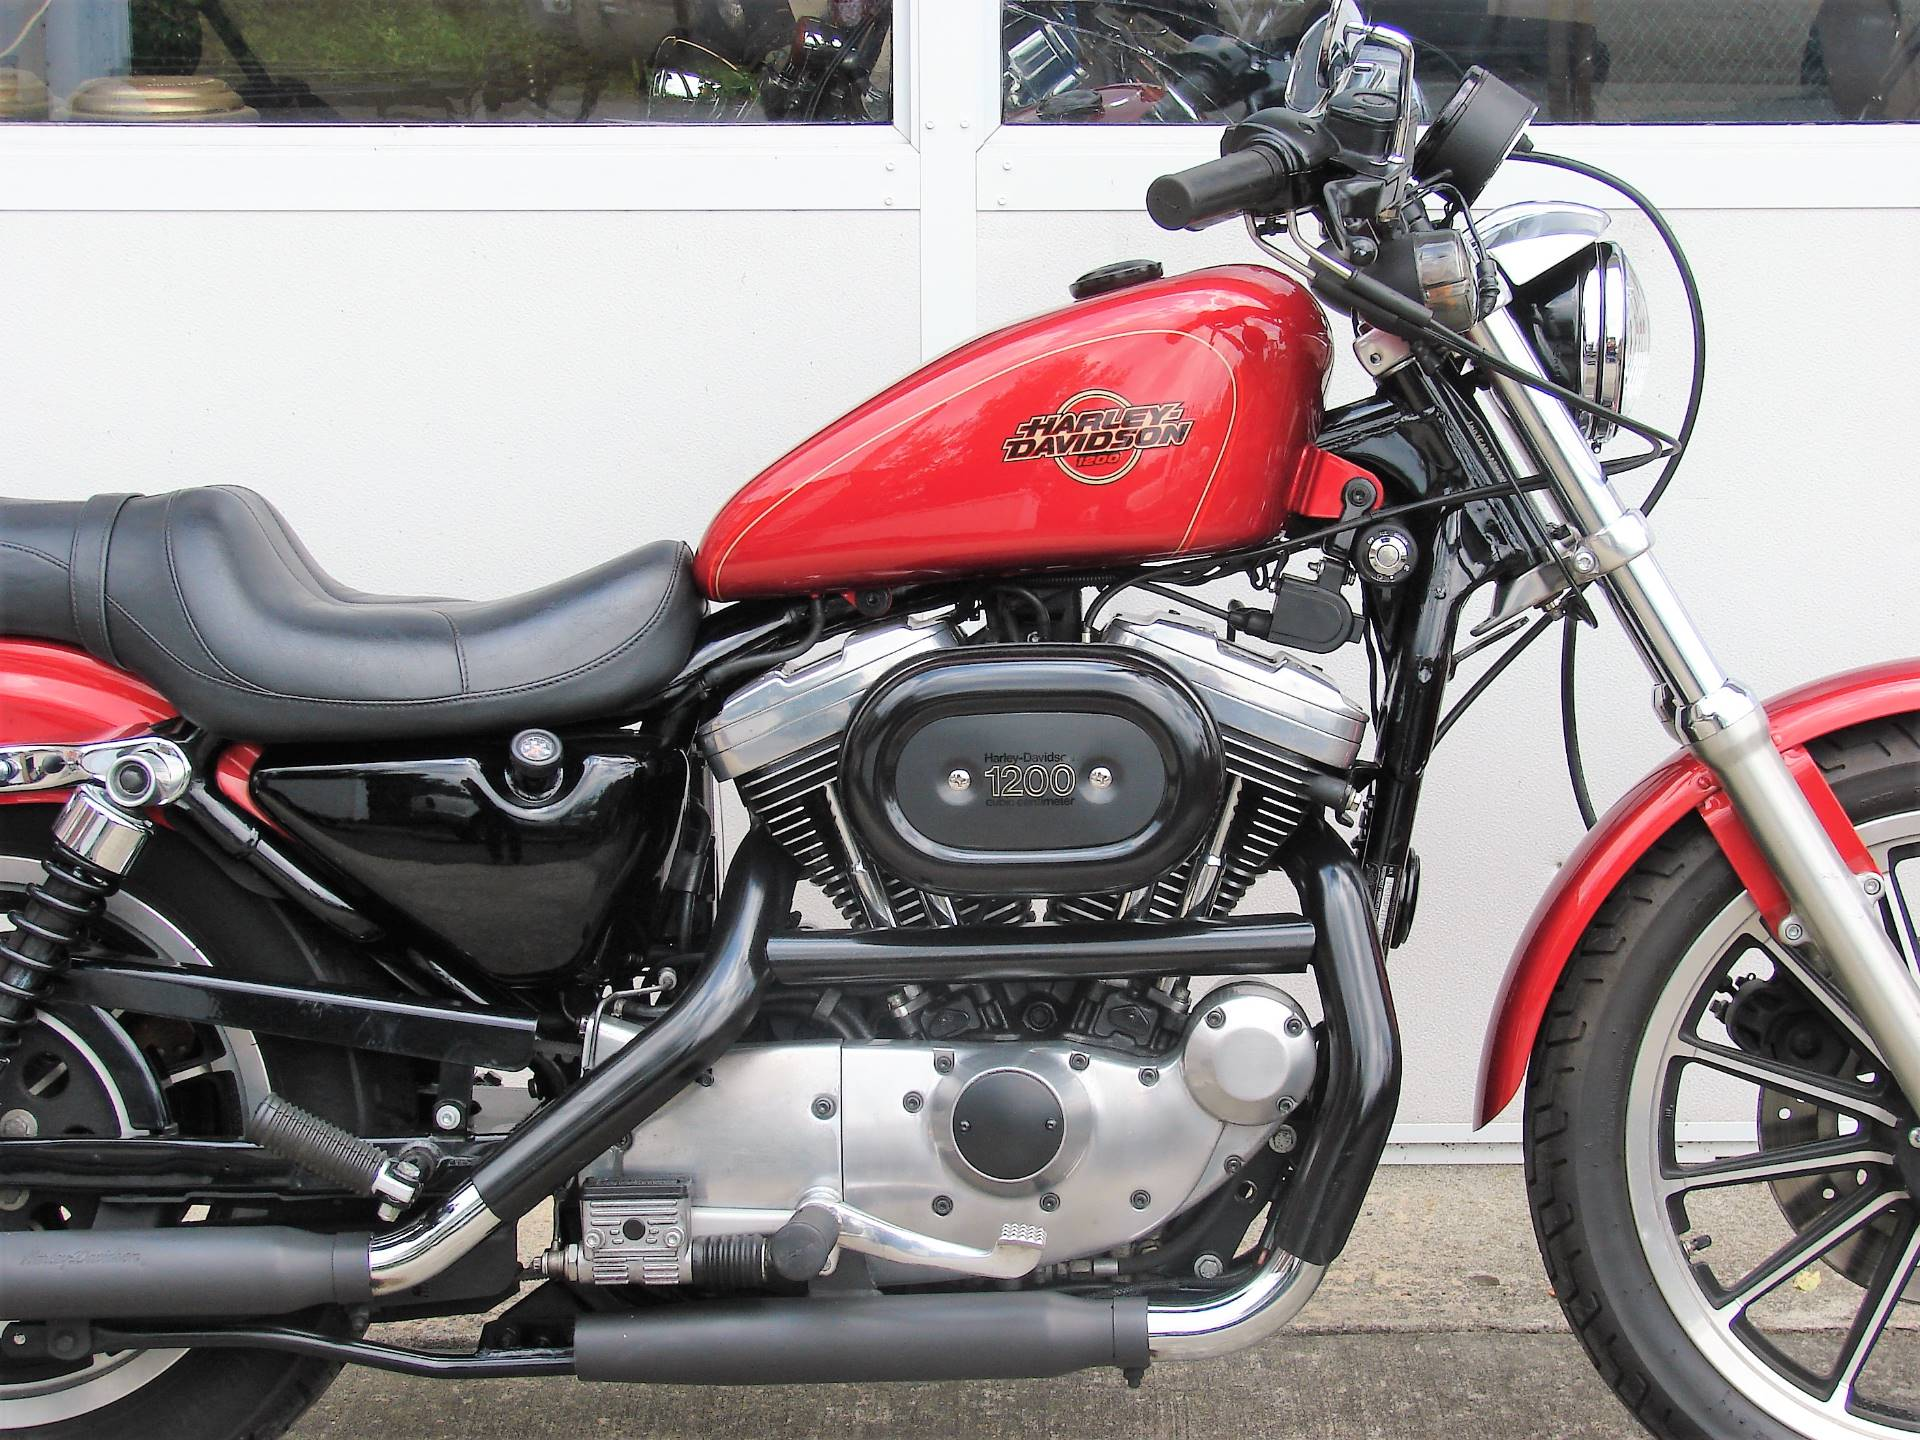 1996 Harley-Davidson XL 1200 Sportster  (Runs Good!) in Williamstown, New Jersey - Photo 2